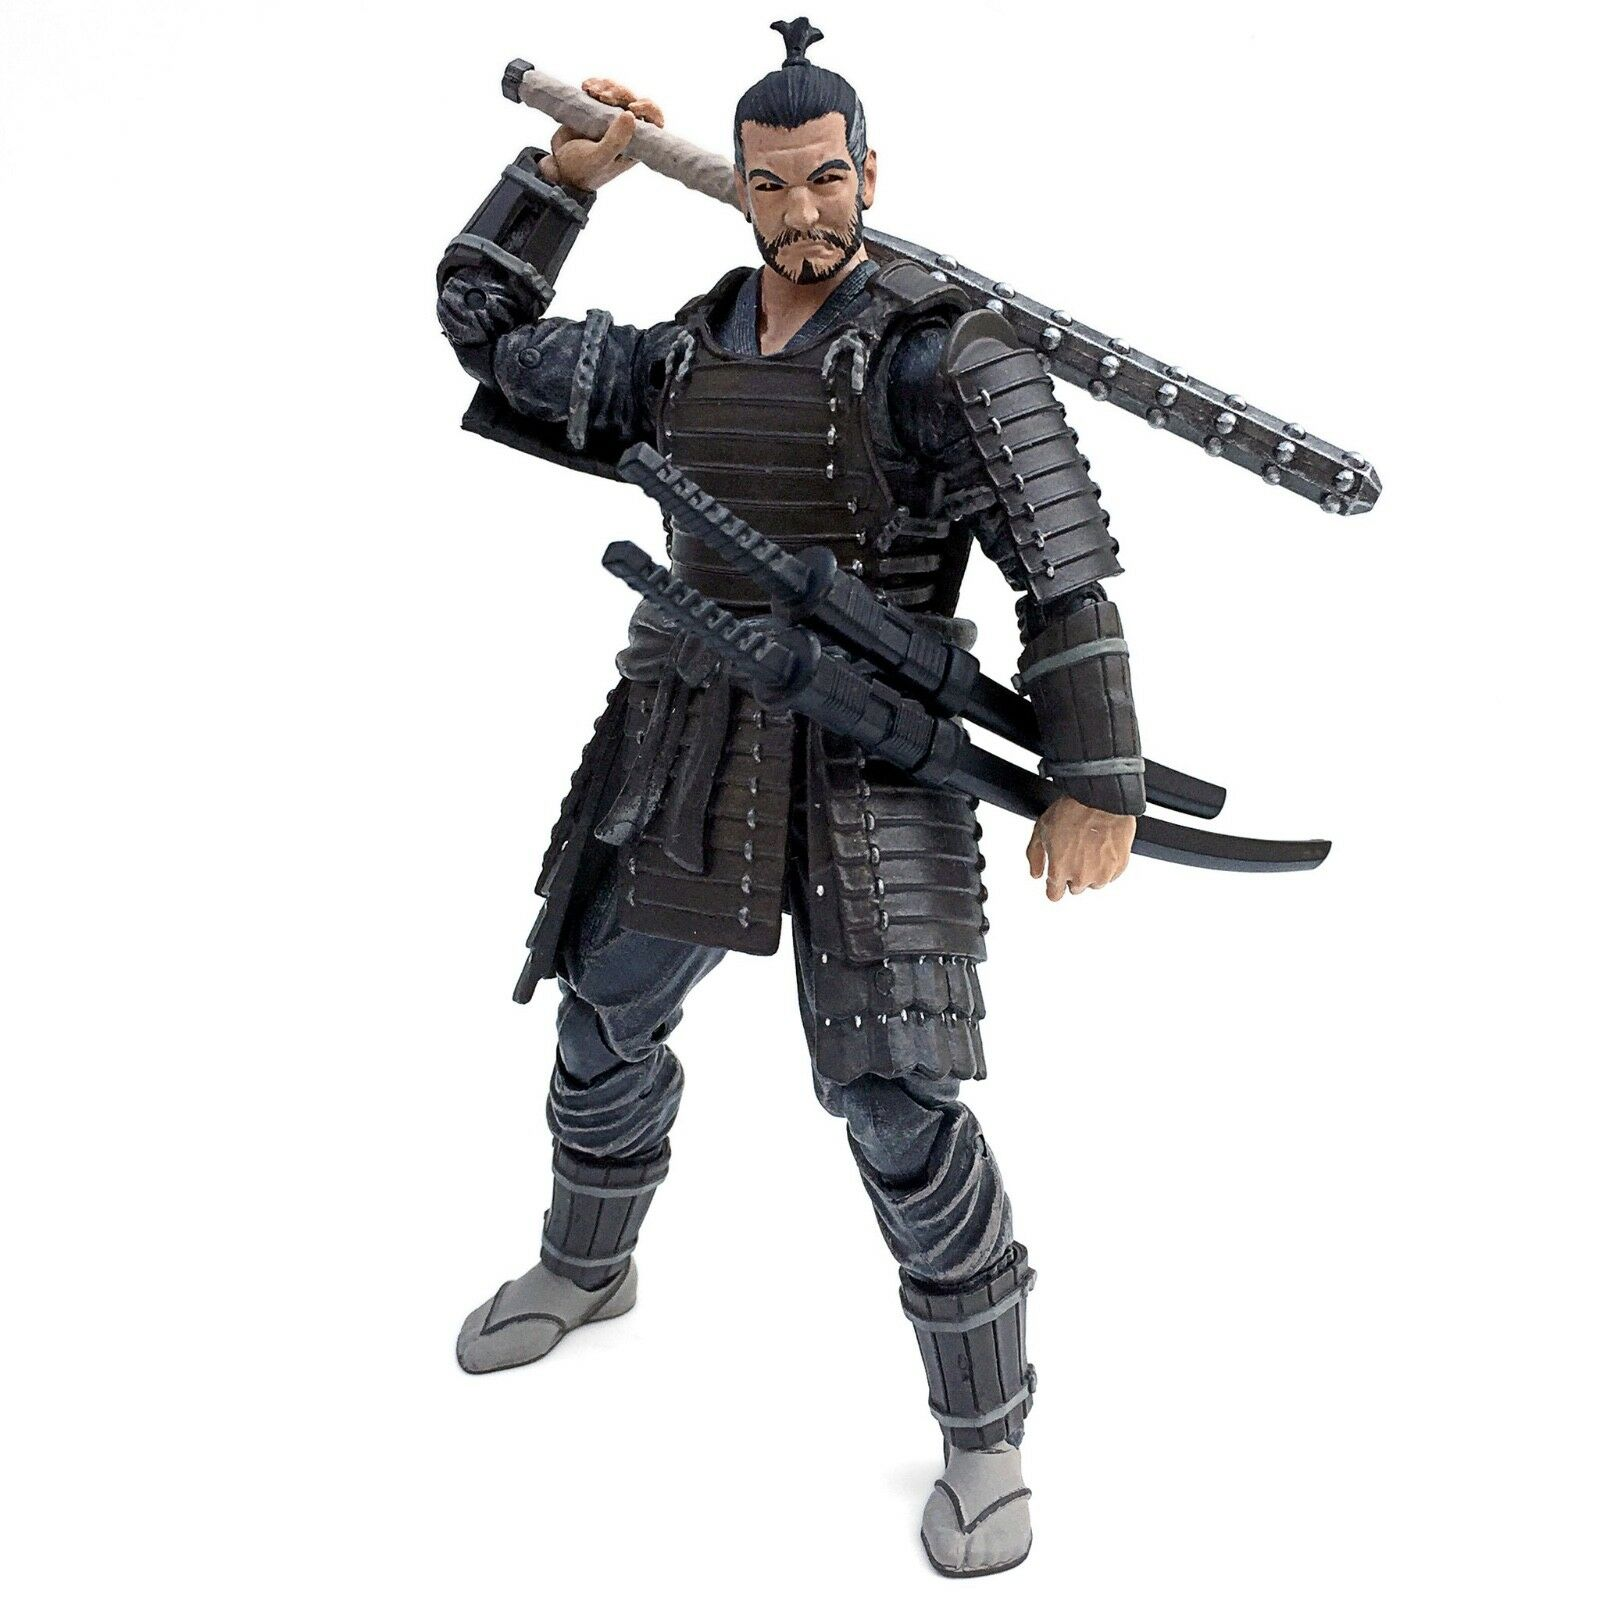 FUR: Fwoosh Articulated Icons Feudal Series Fumetsu (Undying Ronin) 6